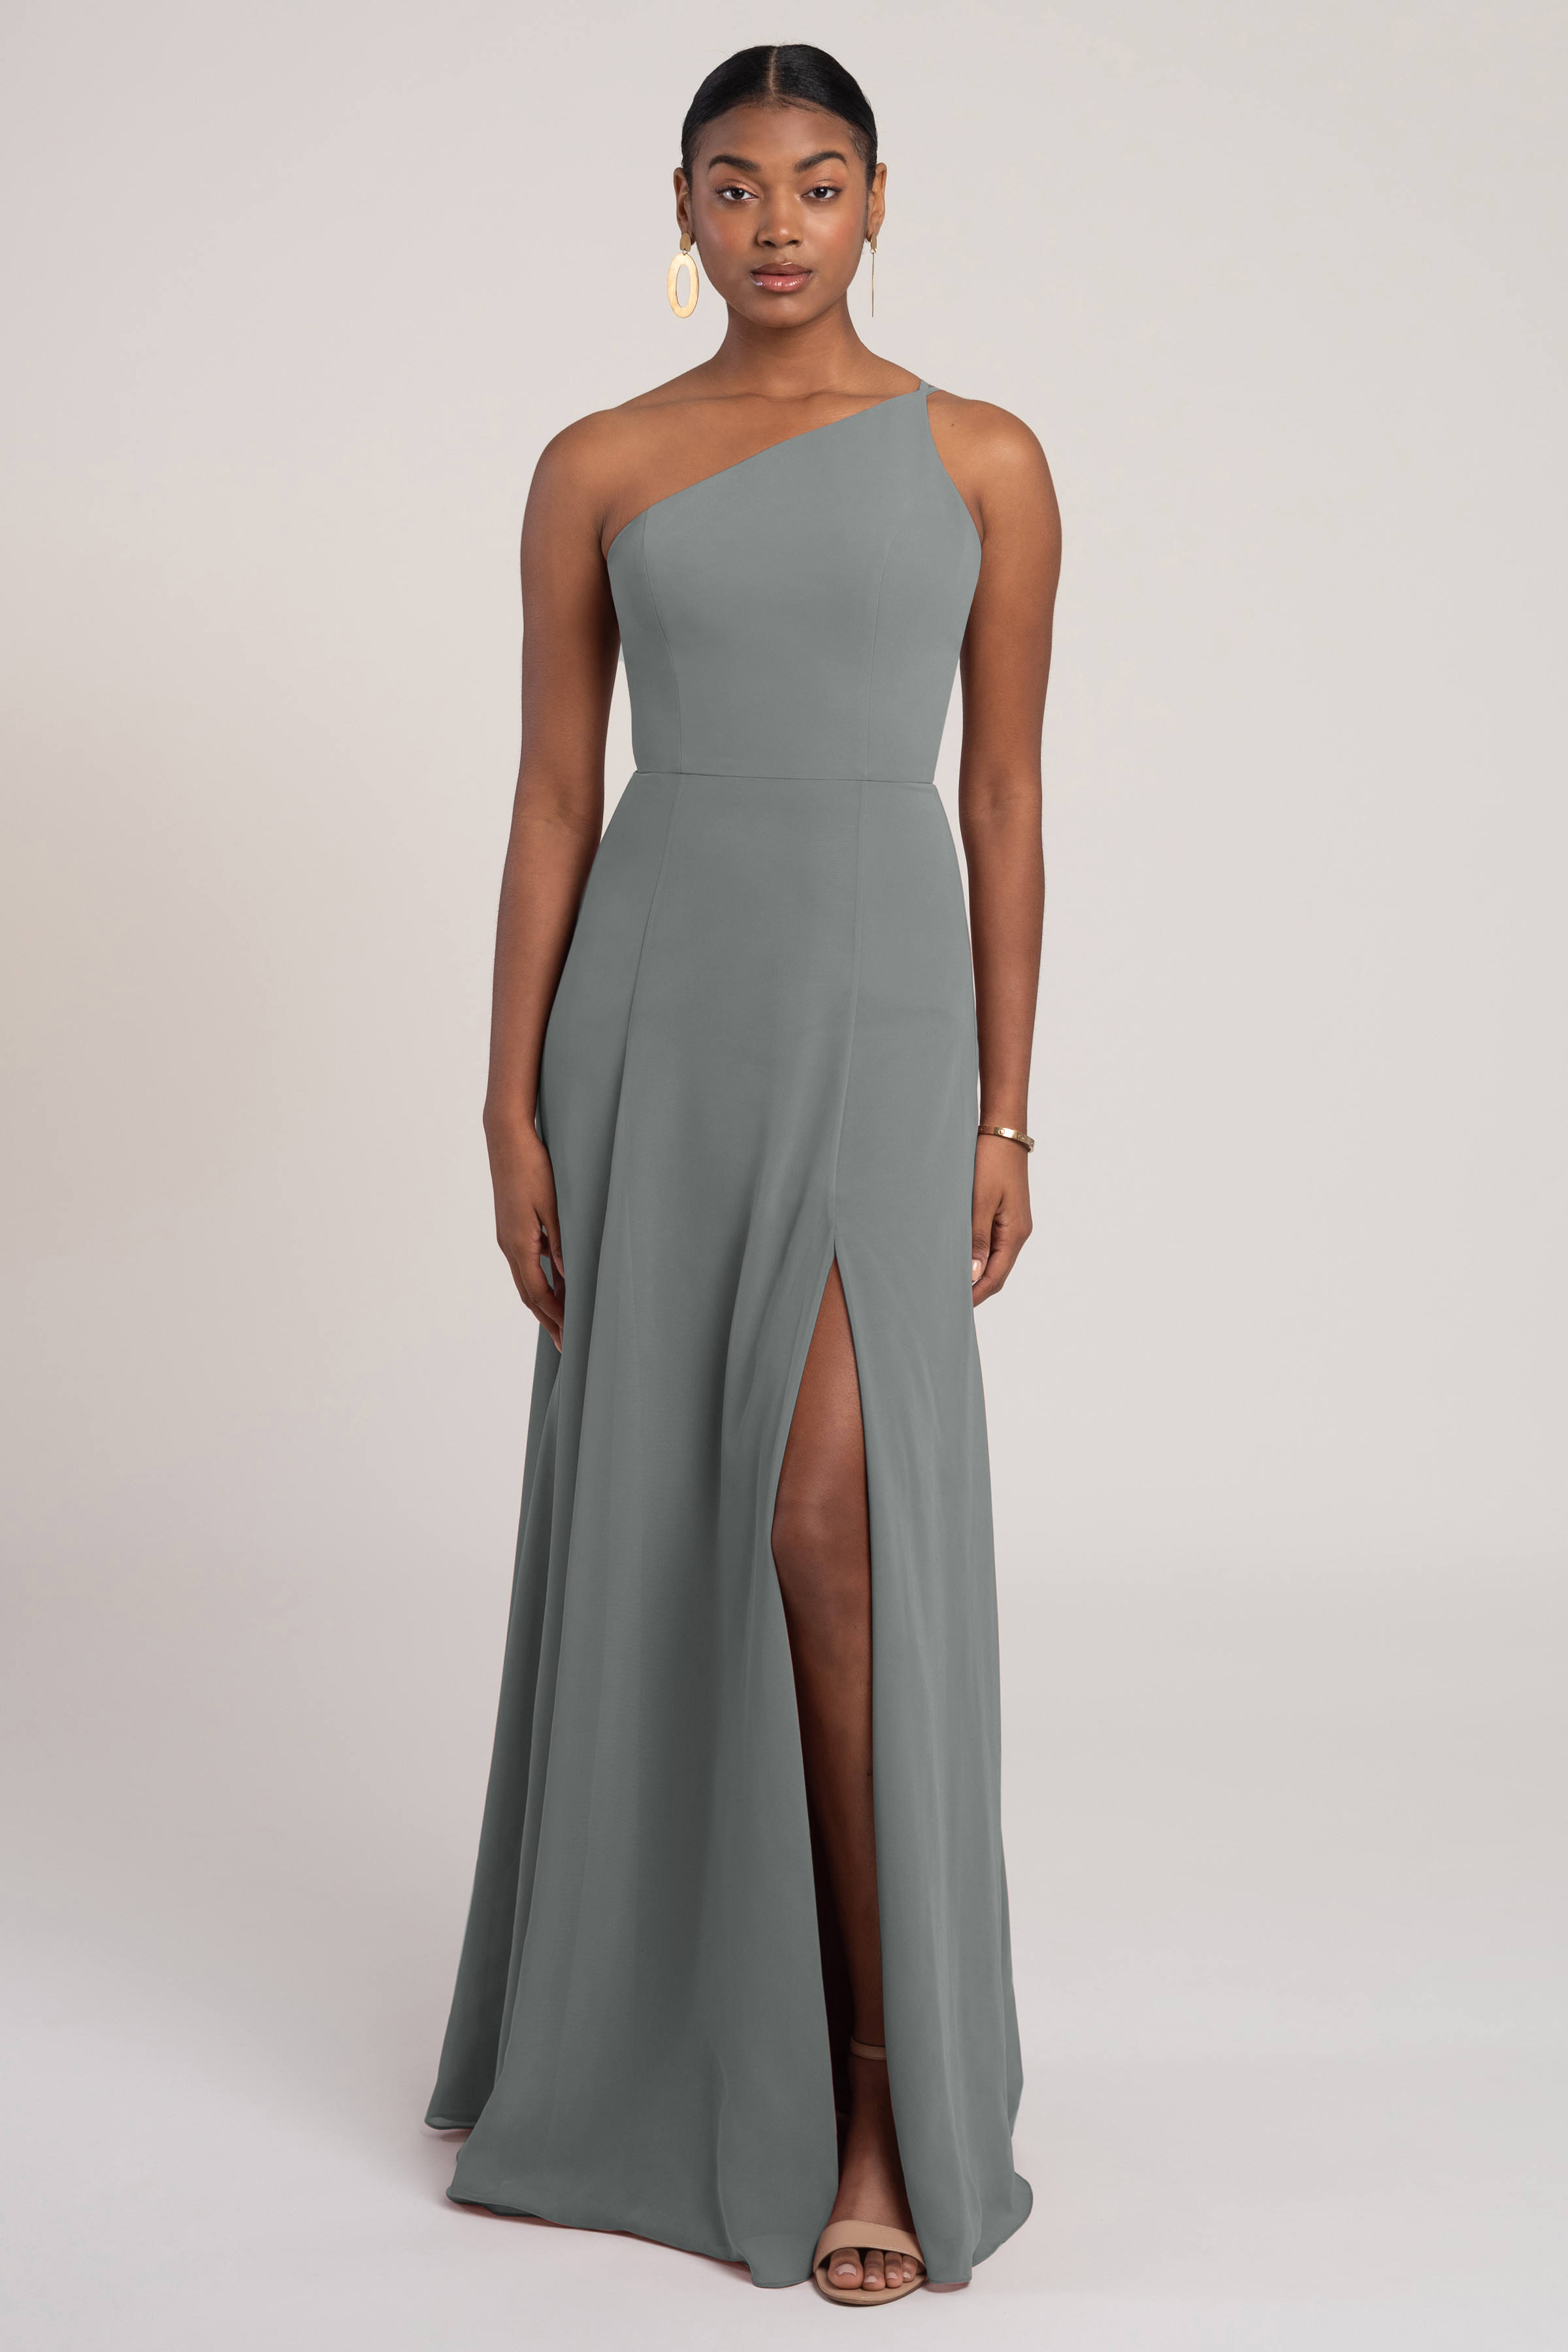 The Kora one shoulder chiffon bridesmaid dress features clean styling and subtle details that make her a beautifully elegant addition to any bridal party. The skirt is cut slim through the hips for a flattering fit and flare silhouette. The delicate asymmetrical straps frame the back and show off your shoulders for a stunning modern look from front to back.